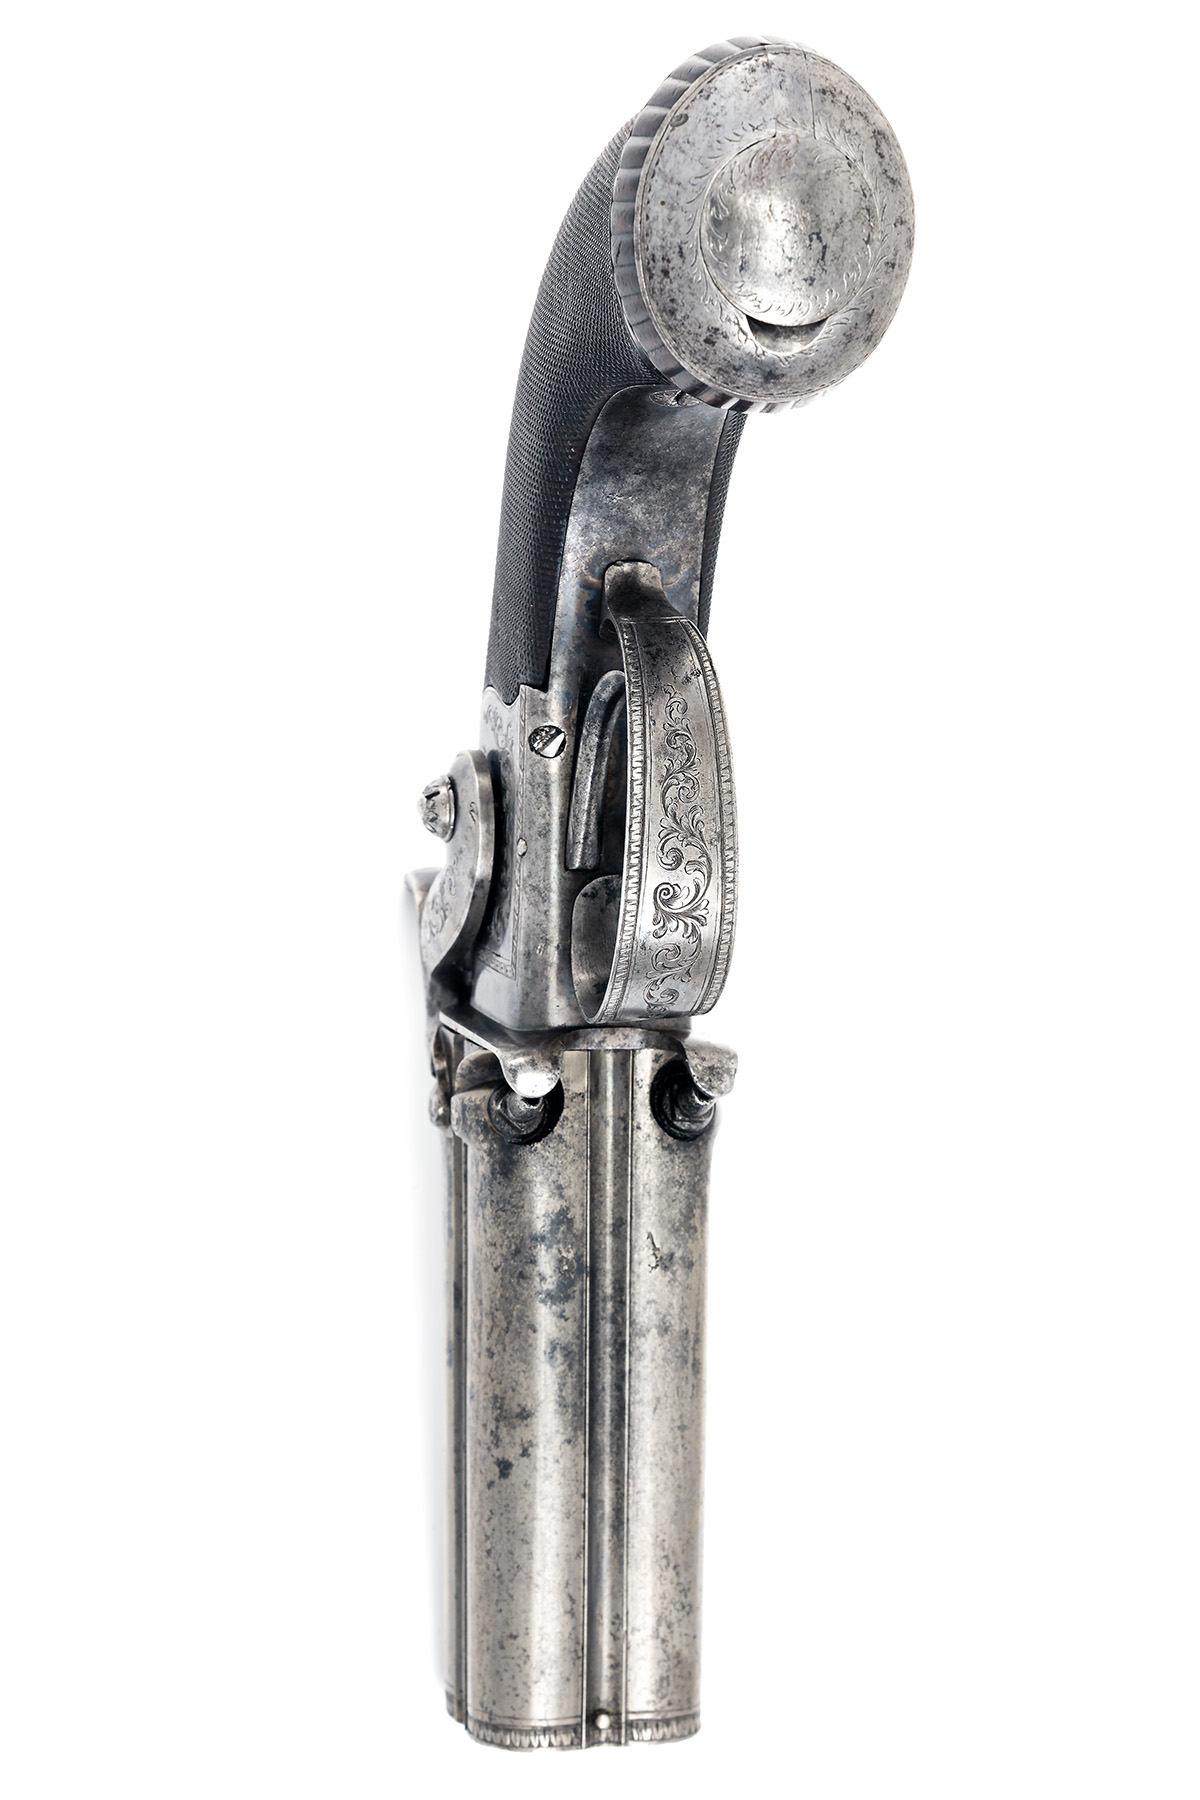 TIPPING, LONDON A CASED 48-BORE PERCUSSION FOUR-BARRELLED TURN-OVER PISTOL, no visible serial - Image 6 of 7